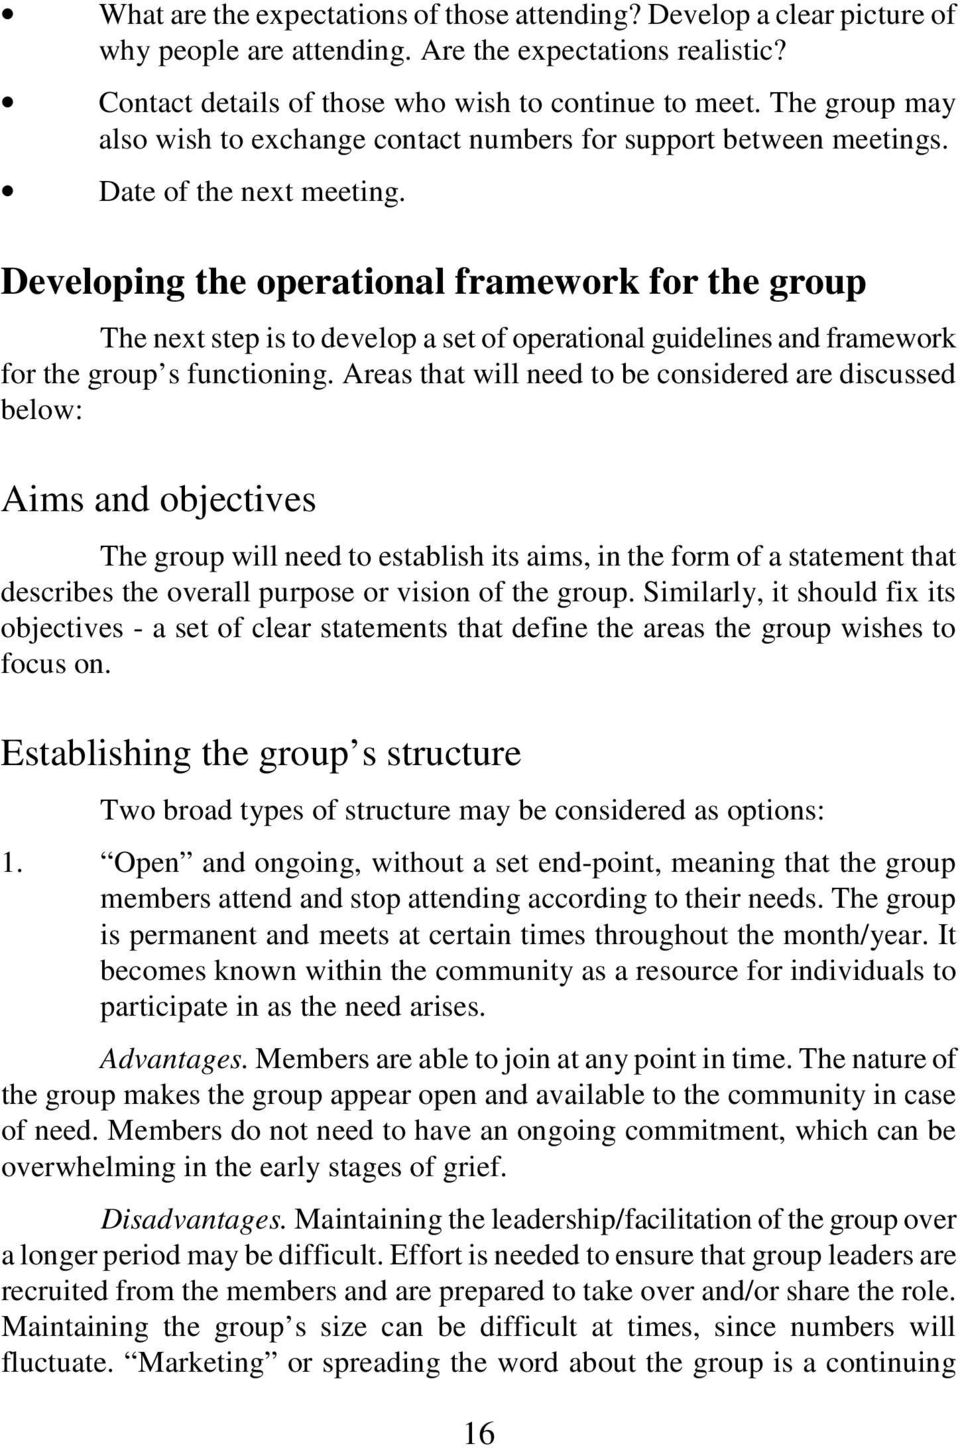 Developing the operational framework for the group The next step is to develop a set of operational guidelines and framework for the group s functioning.